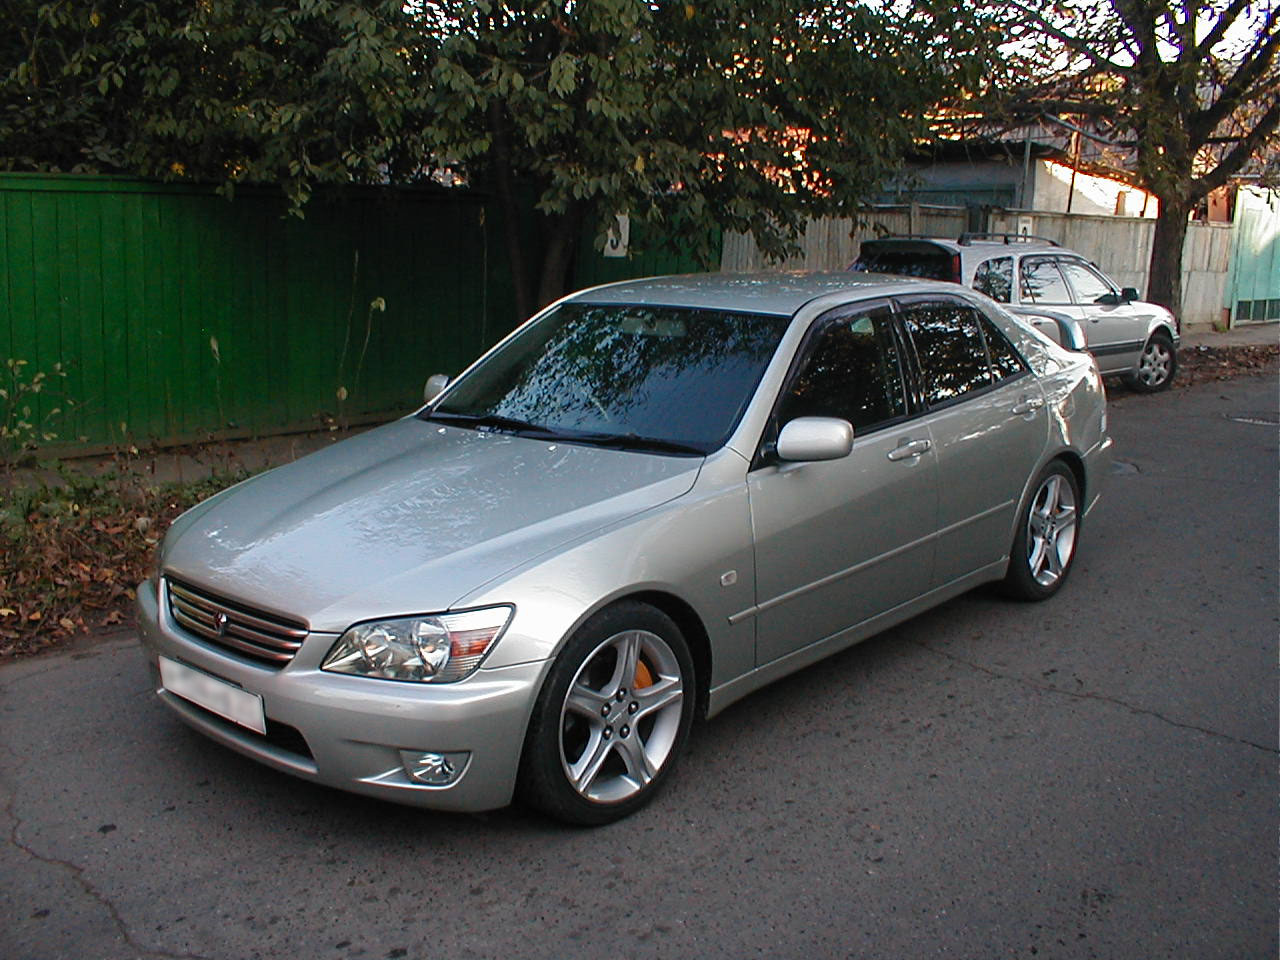 Lexus IS 200 2001 photo - 2